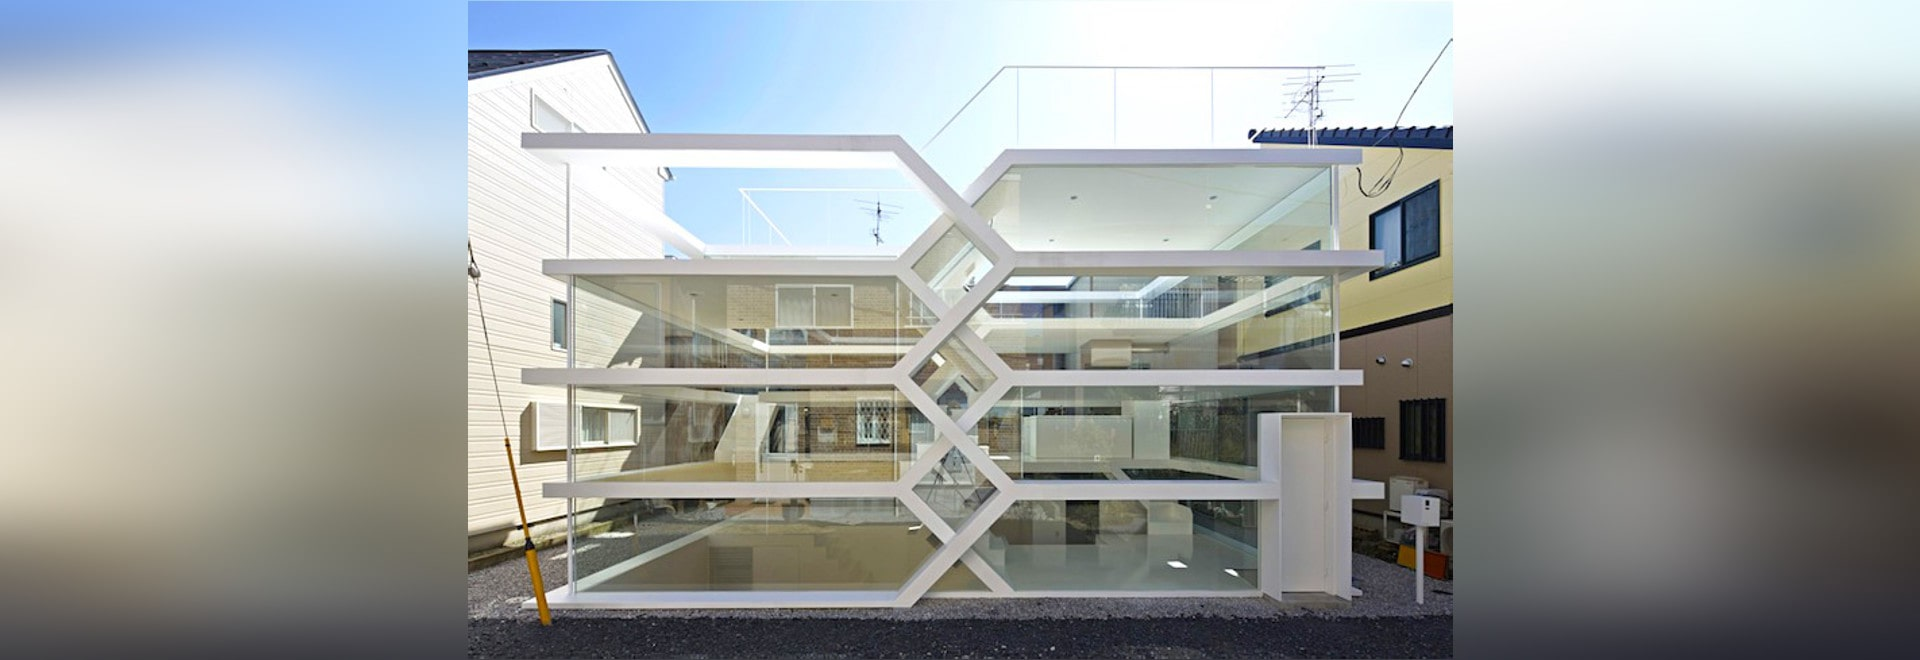 See Through Glass S House Is A See Through Glass Home With An Mc Escher Like